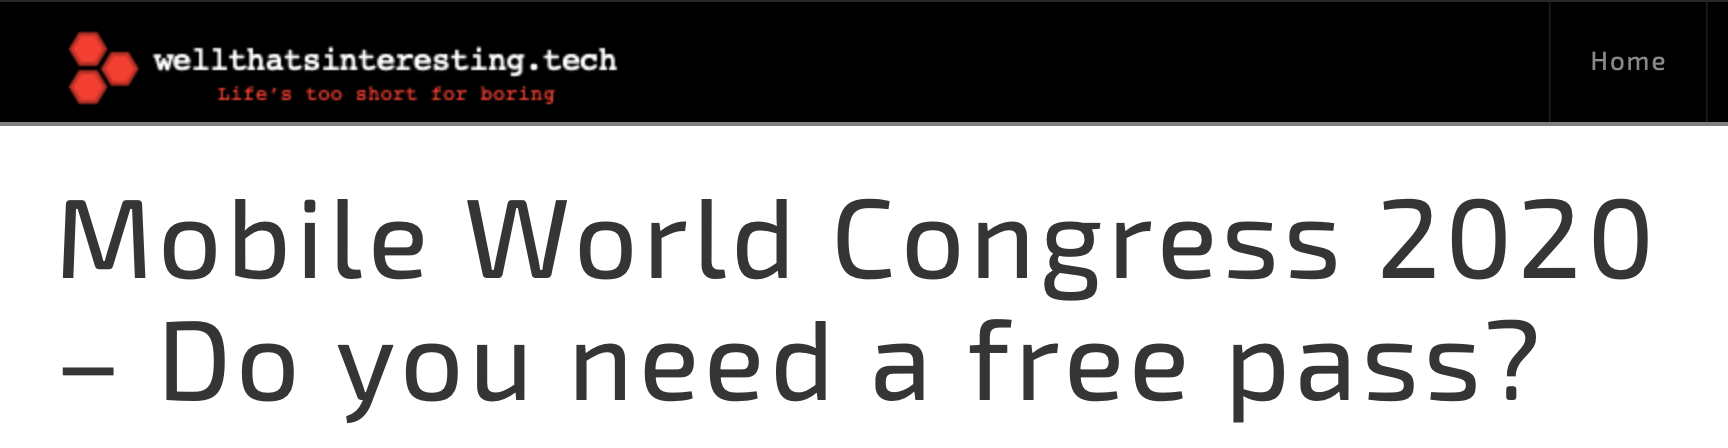 free pass for mobile world congress